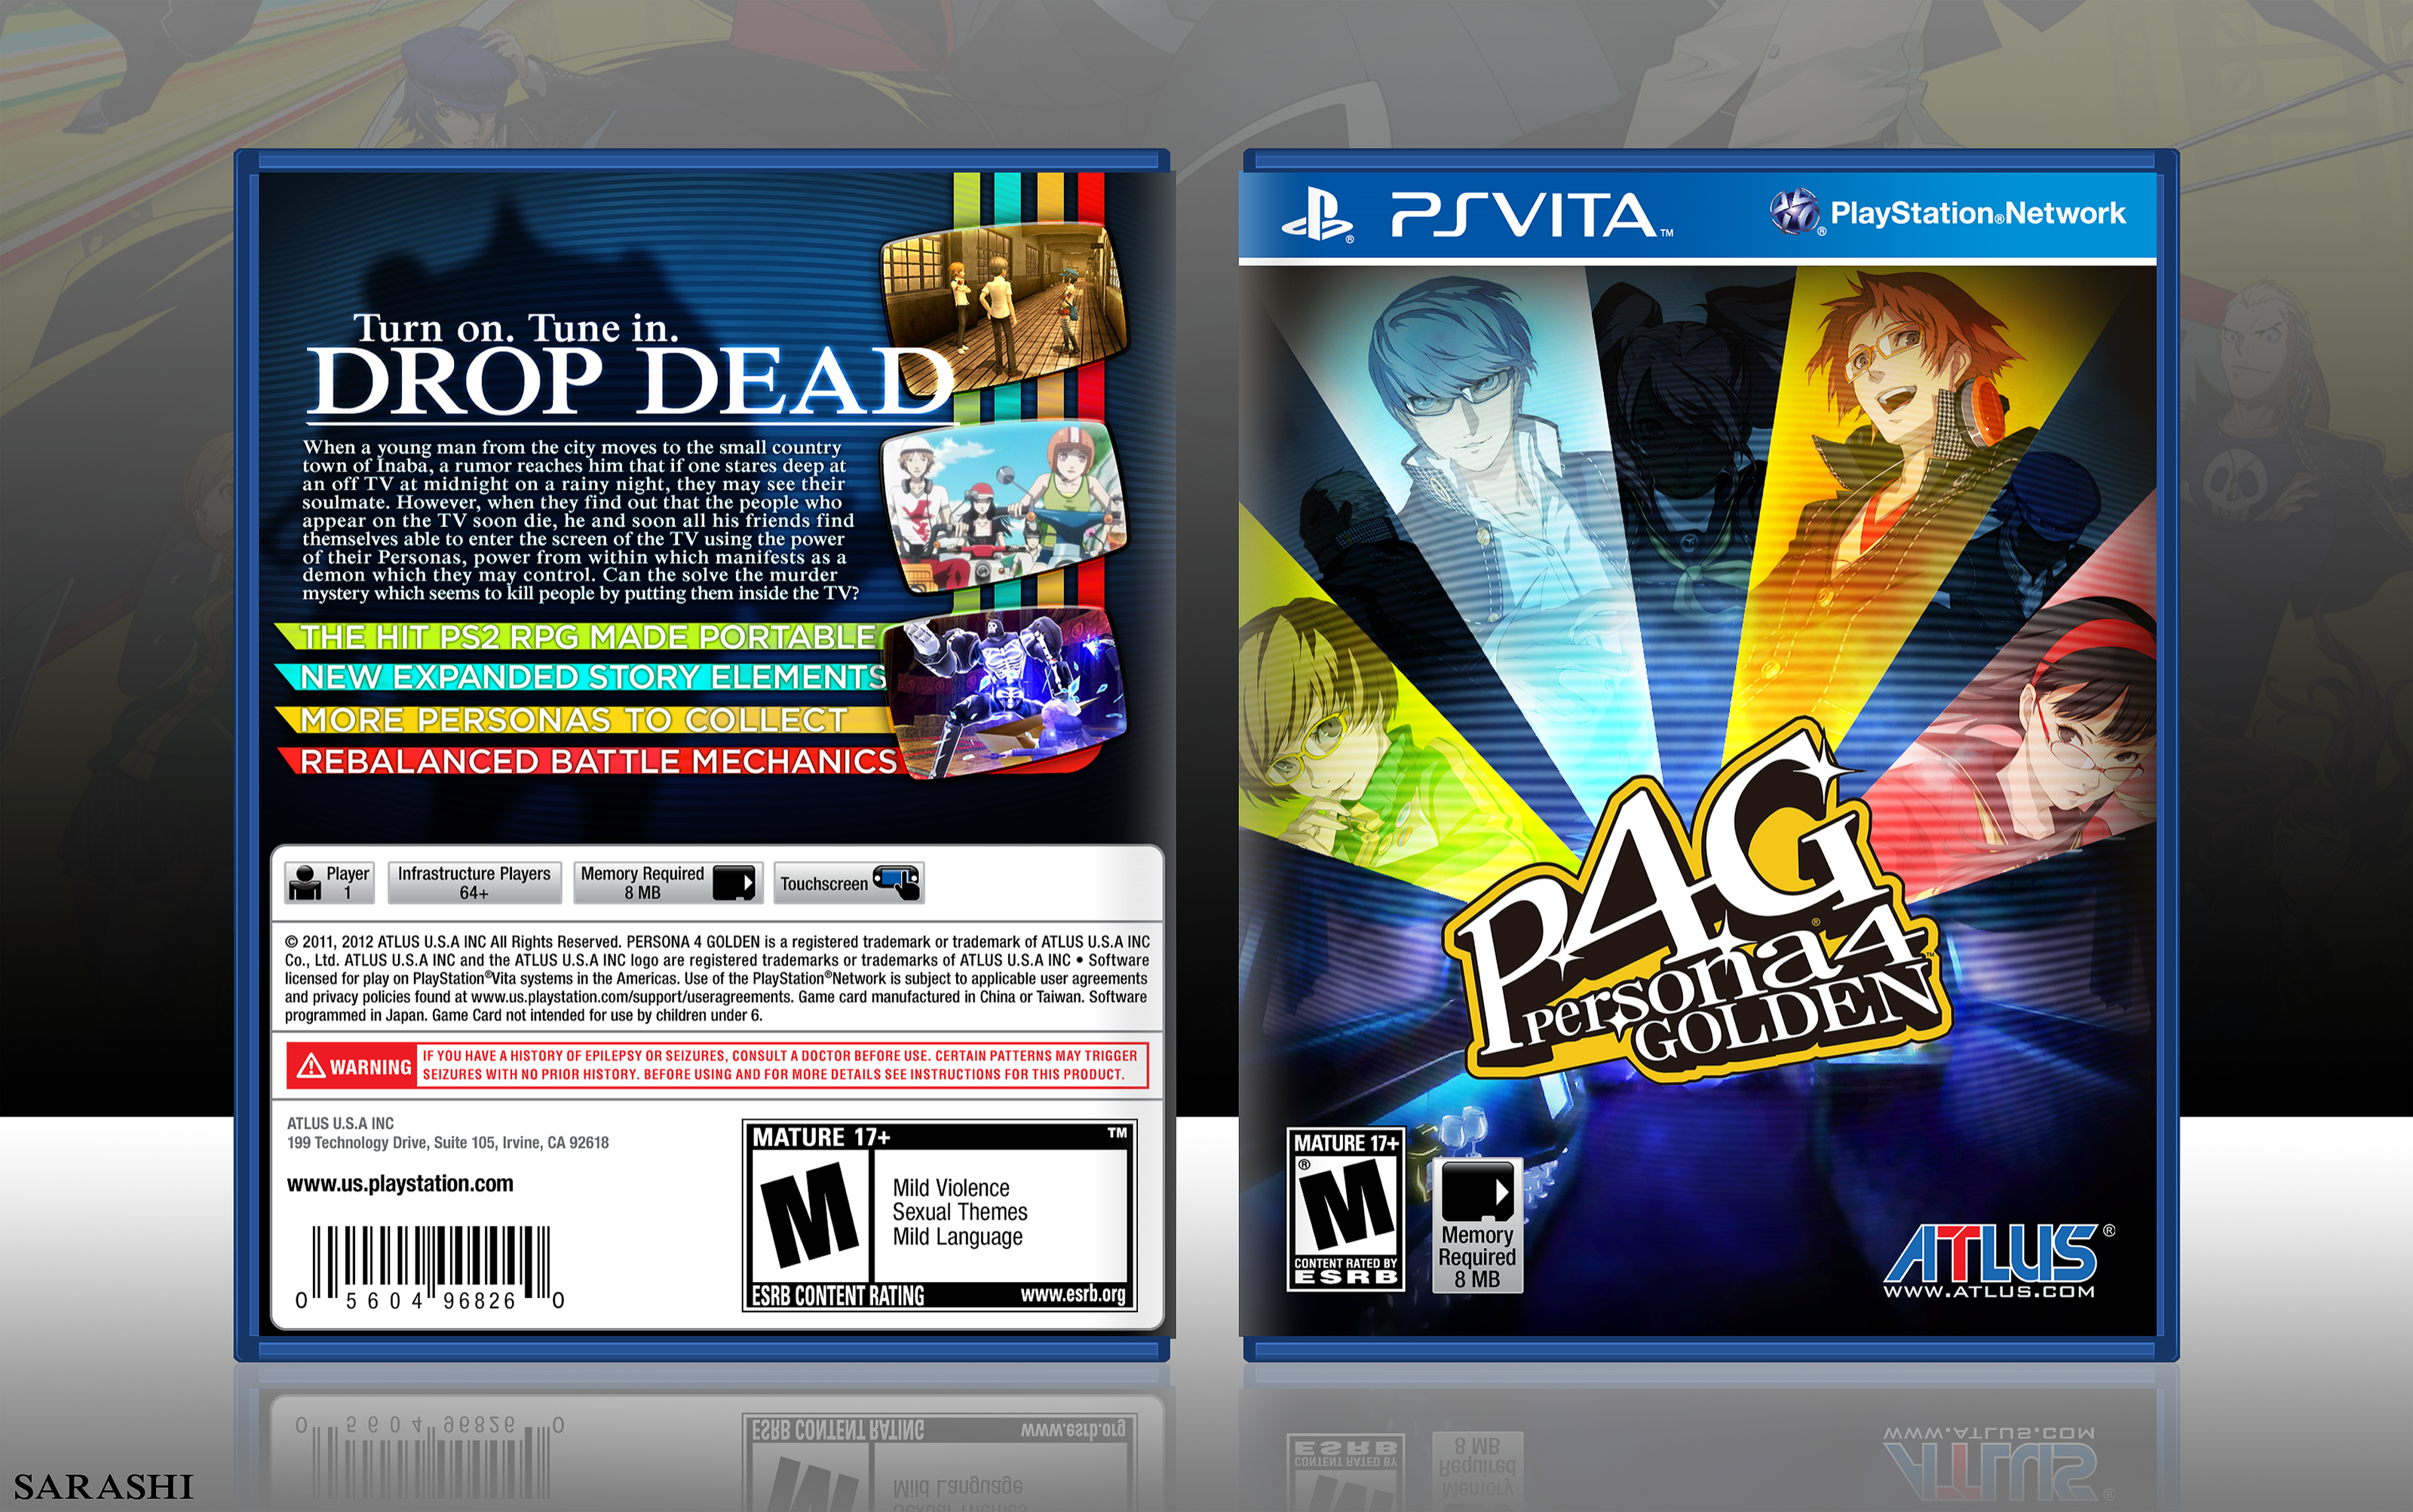 Persona 4 Golden box cover